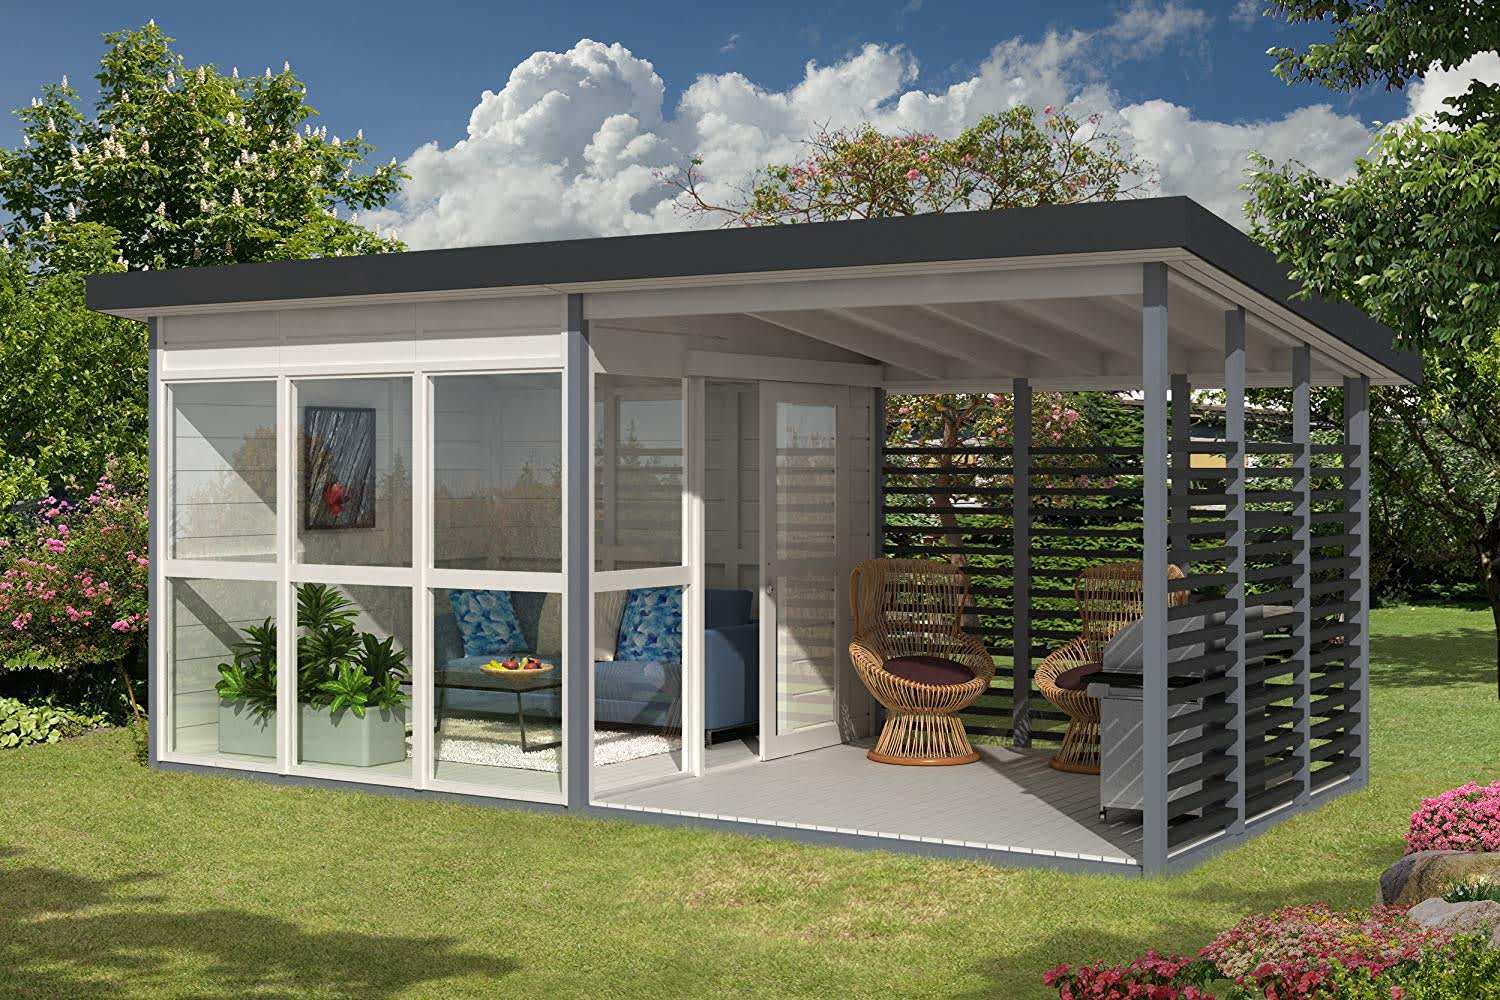 8 Prefab Tiny Houses You Can Order Right Off Amazon